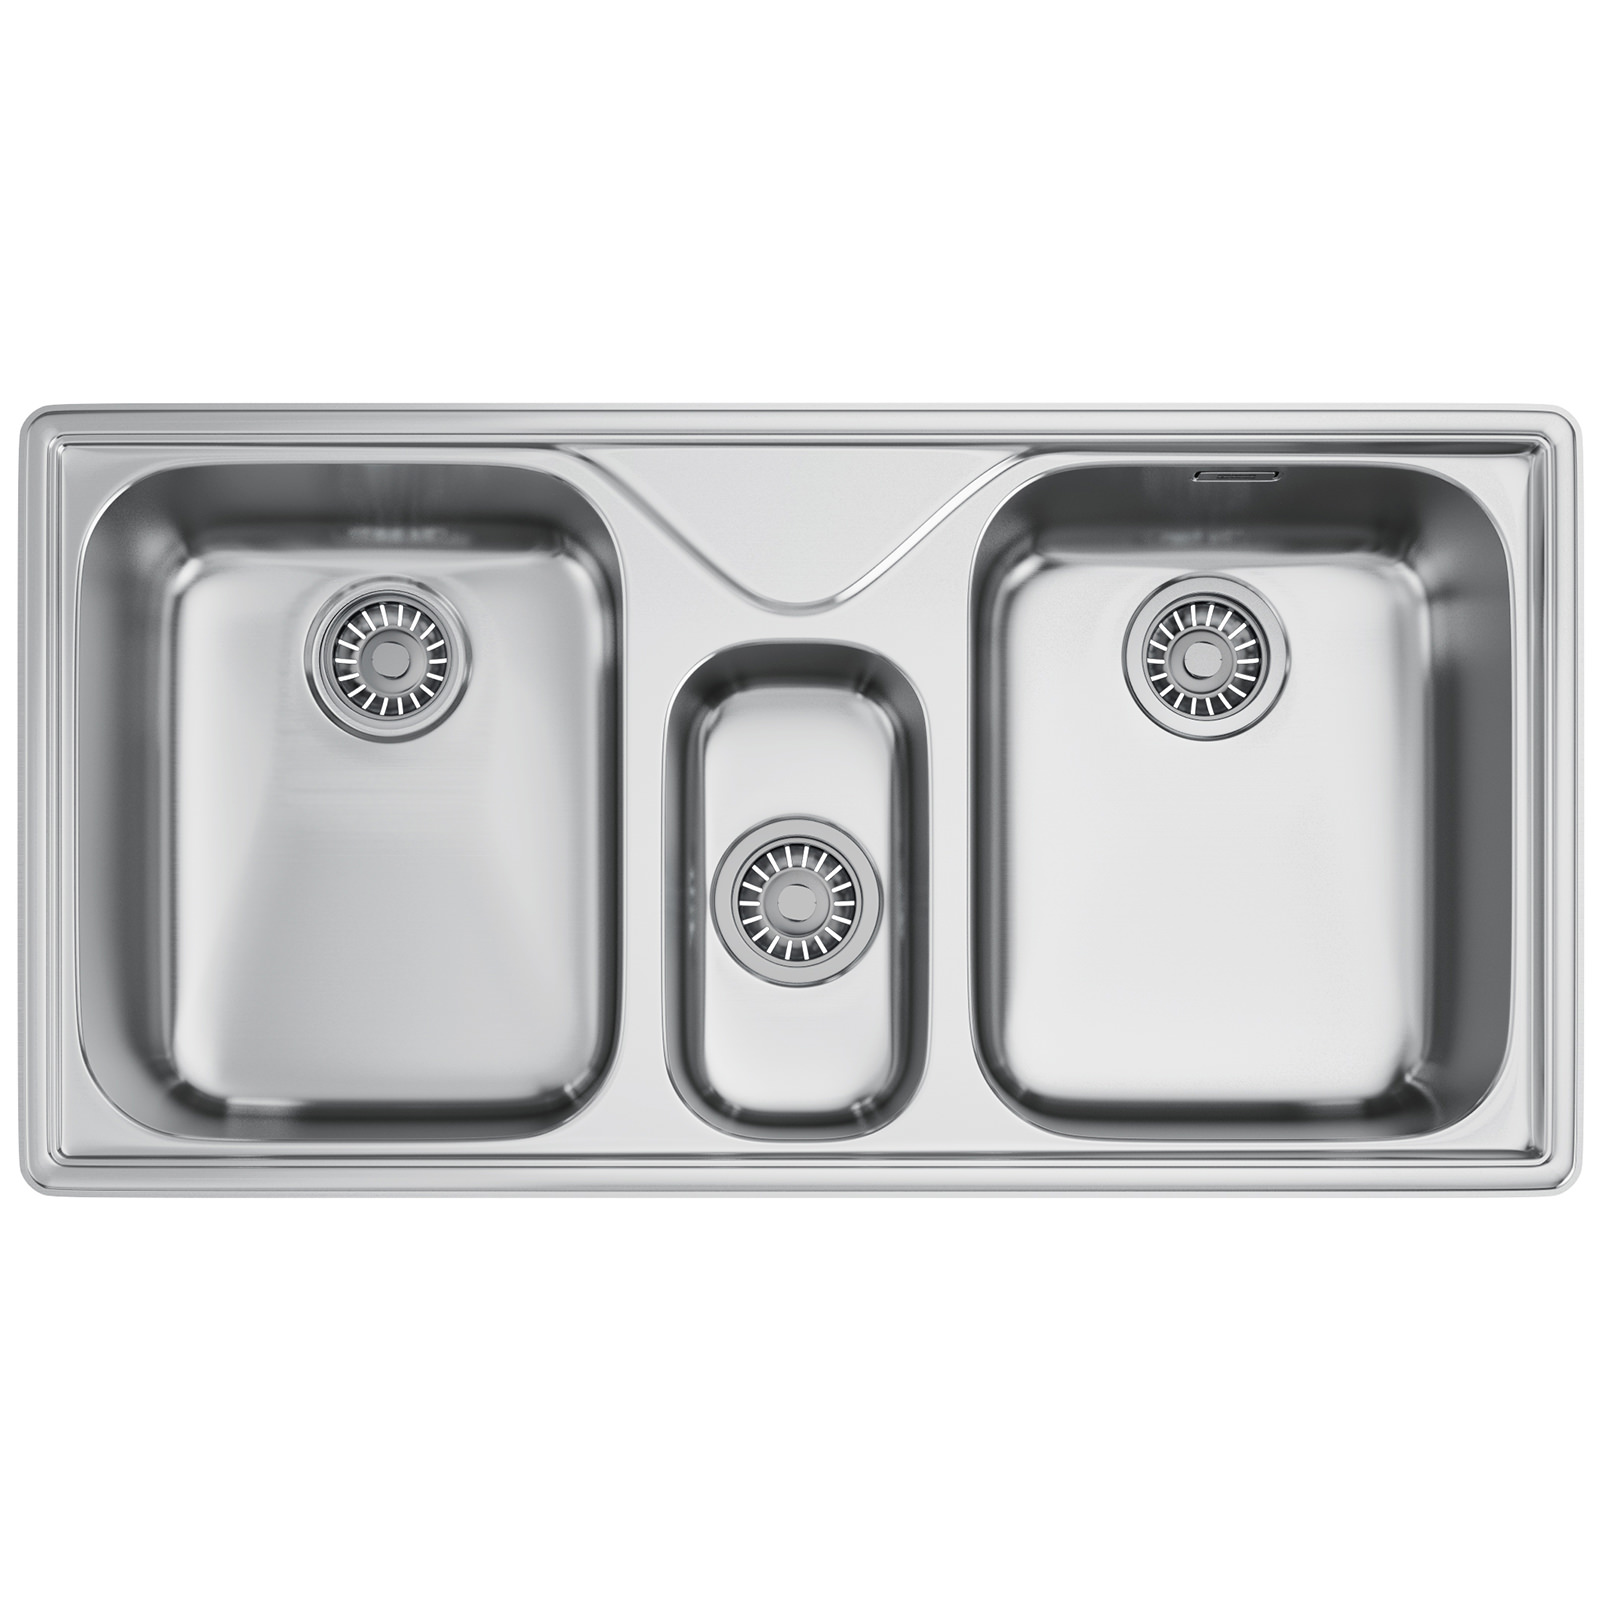 Franke 2 Bowl Sink : ... two bowl sinks franke ariane arx 670 stainless steel 2 5 bowl kitchen